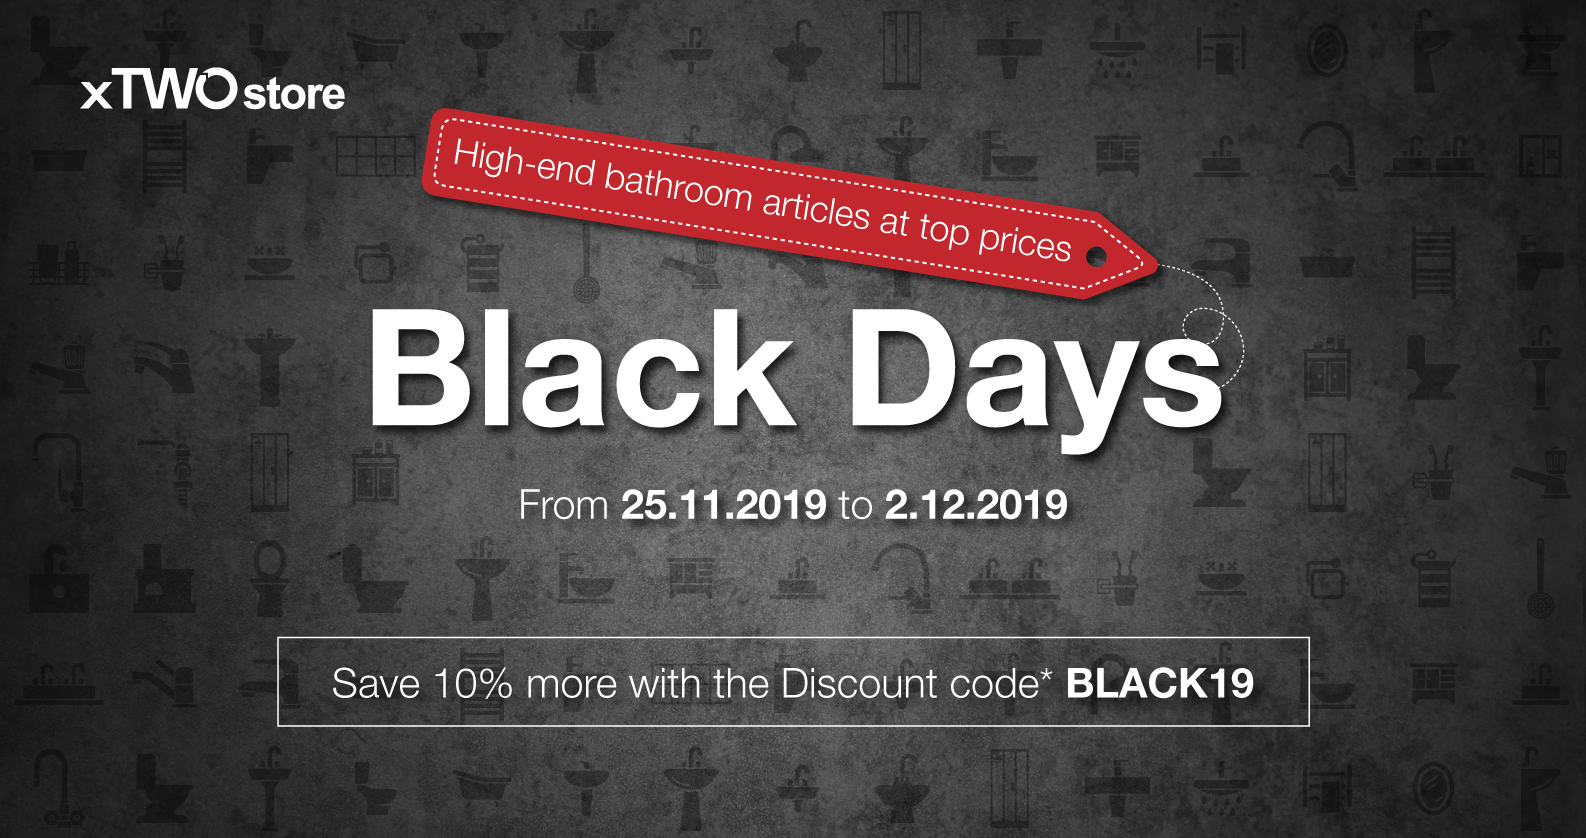 Black Days at xTWOstore